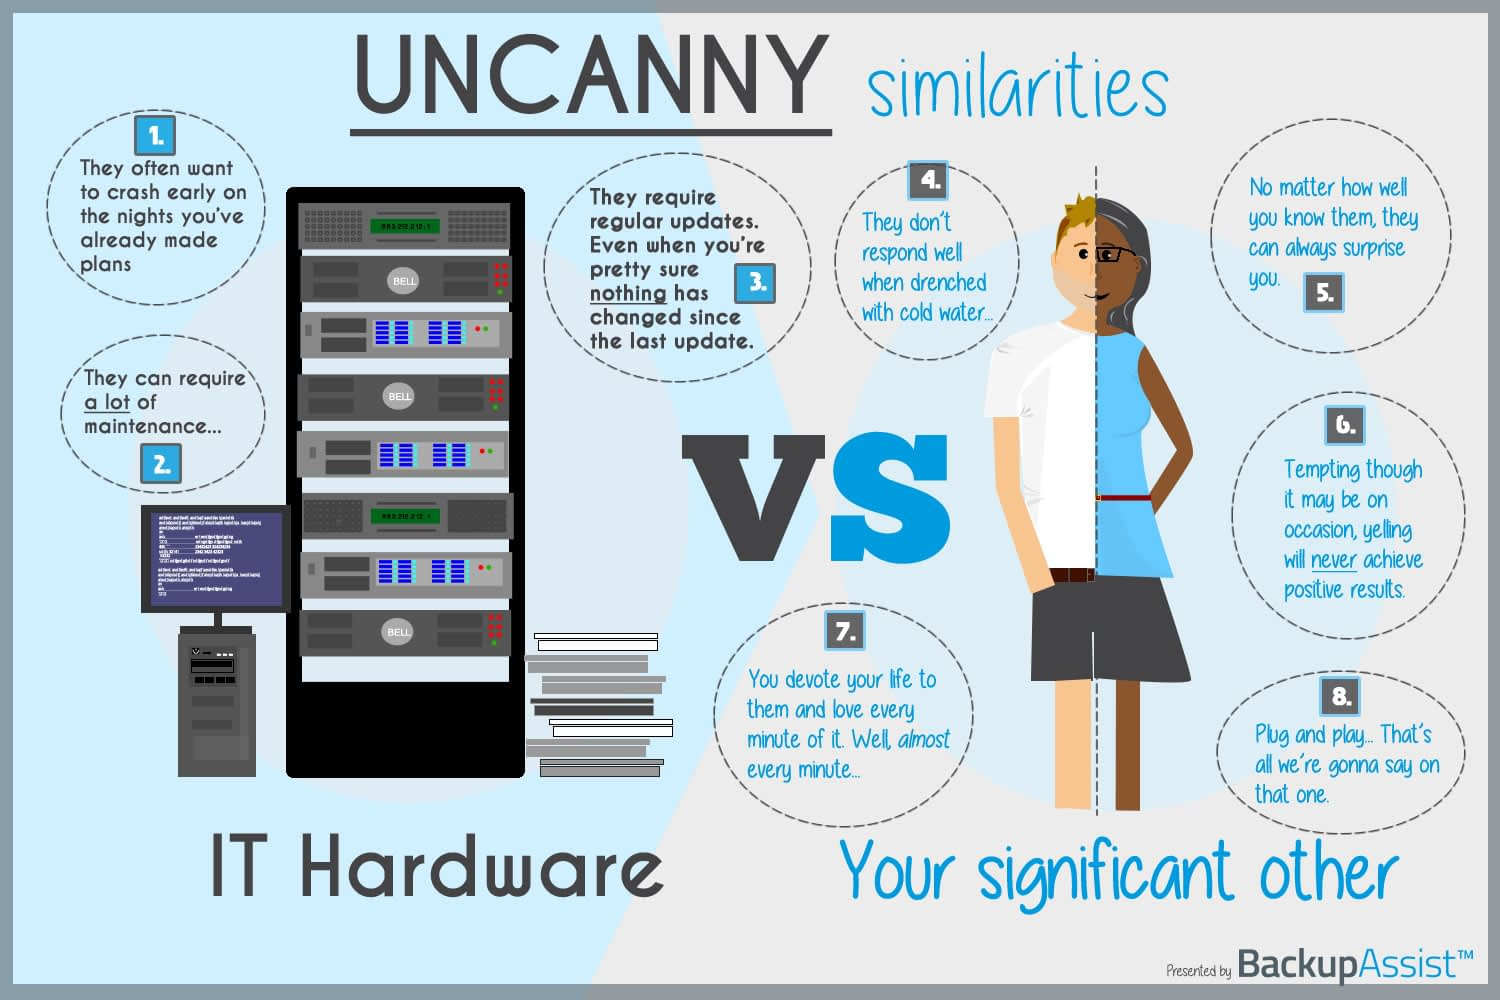 Uncanny similarities - IT hardware and your significant other